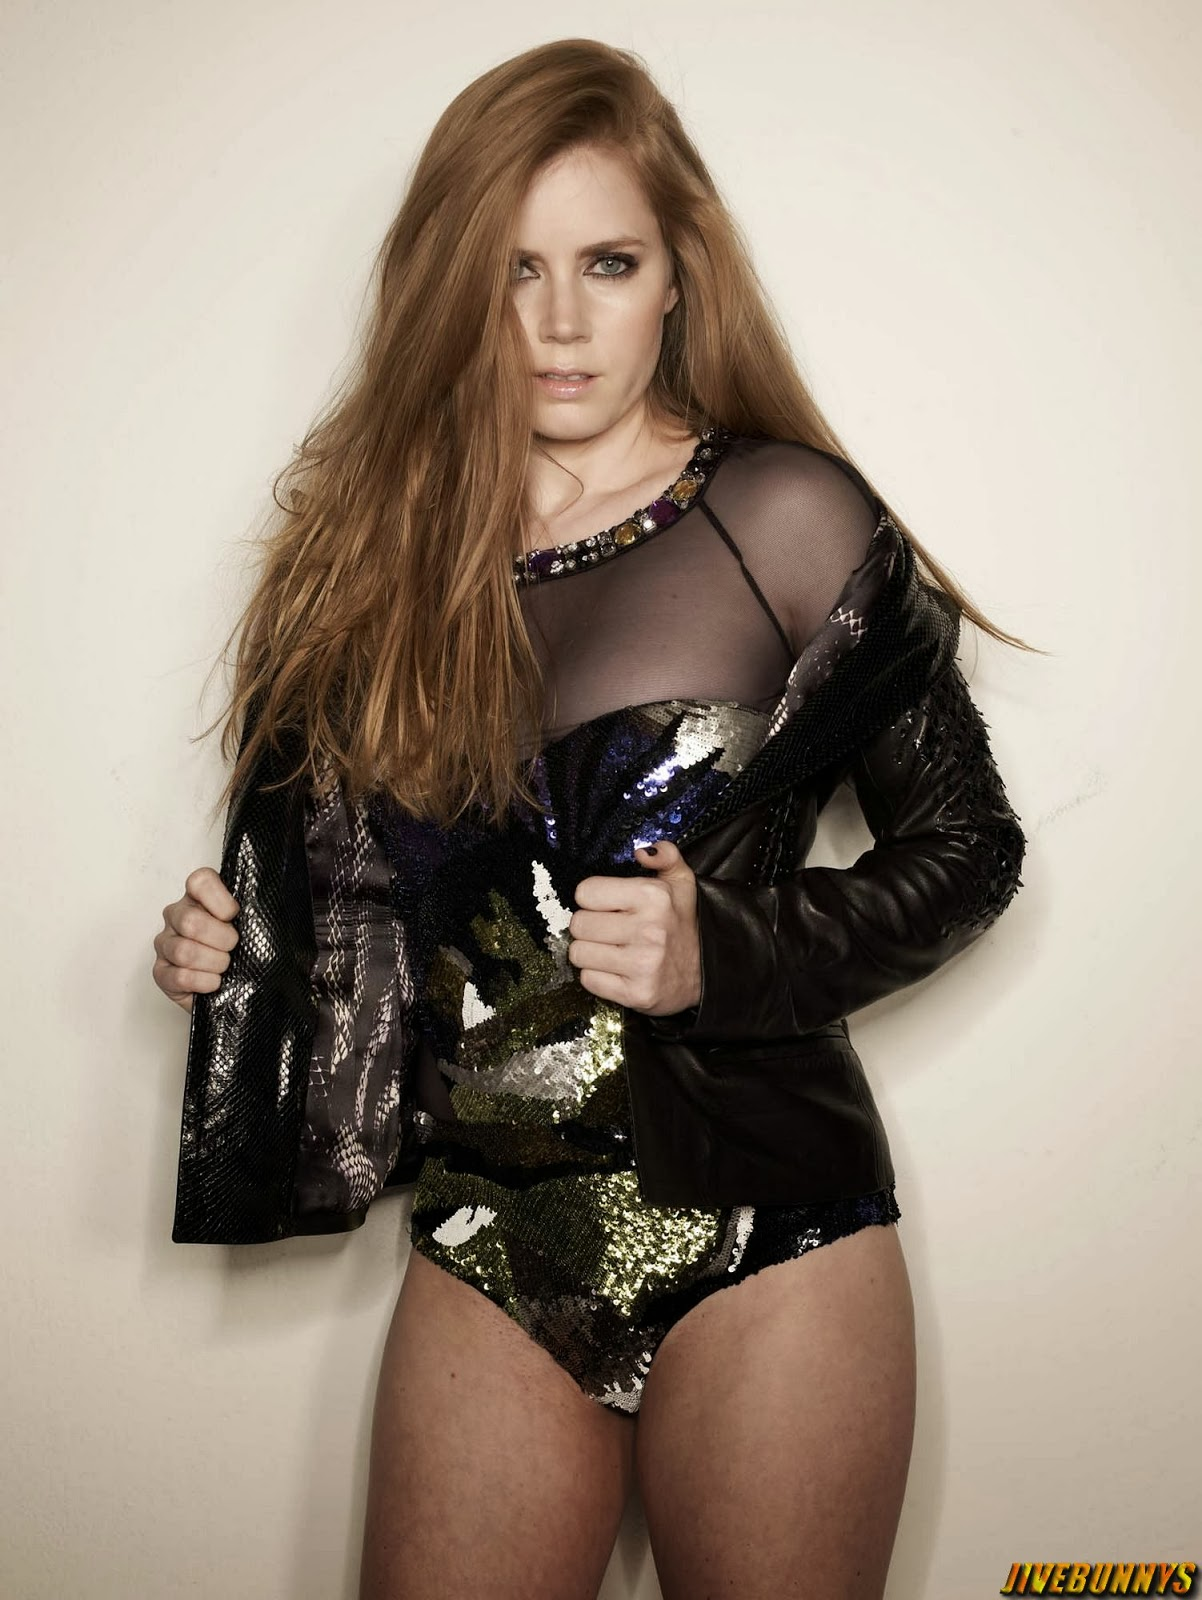 Jivebunnys Female Celebrity Picture Gallery: Amy Adams ... Amy Adams Imdb